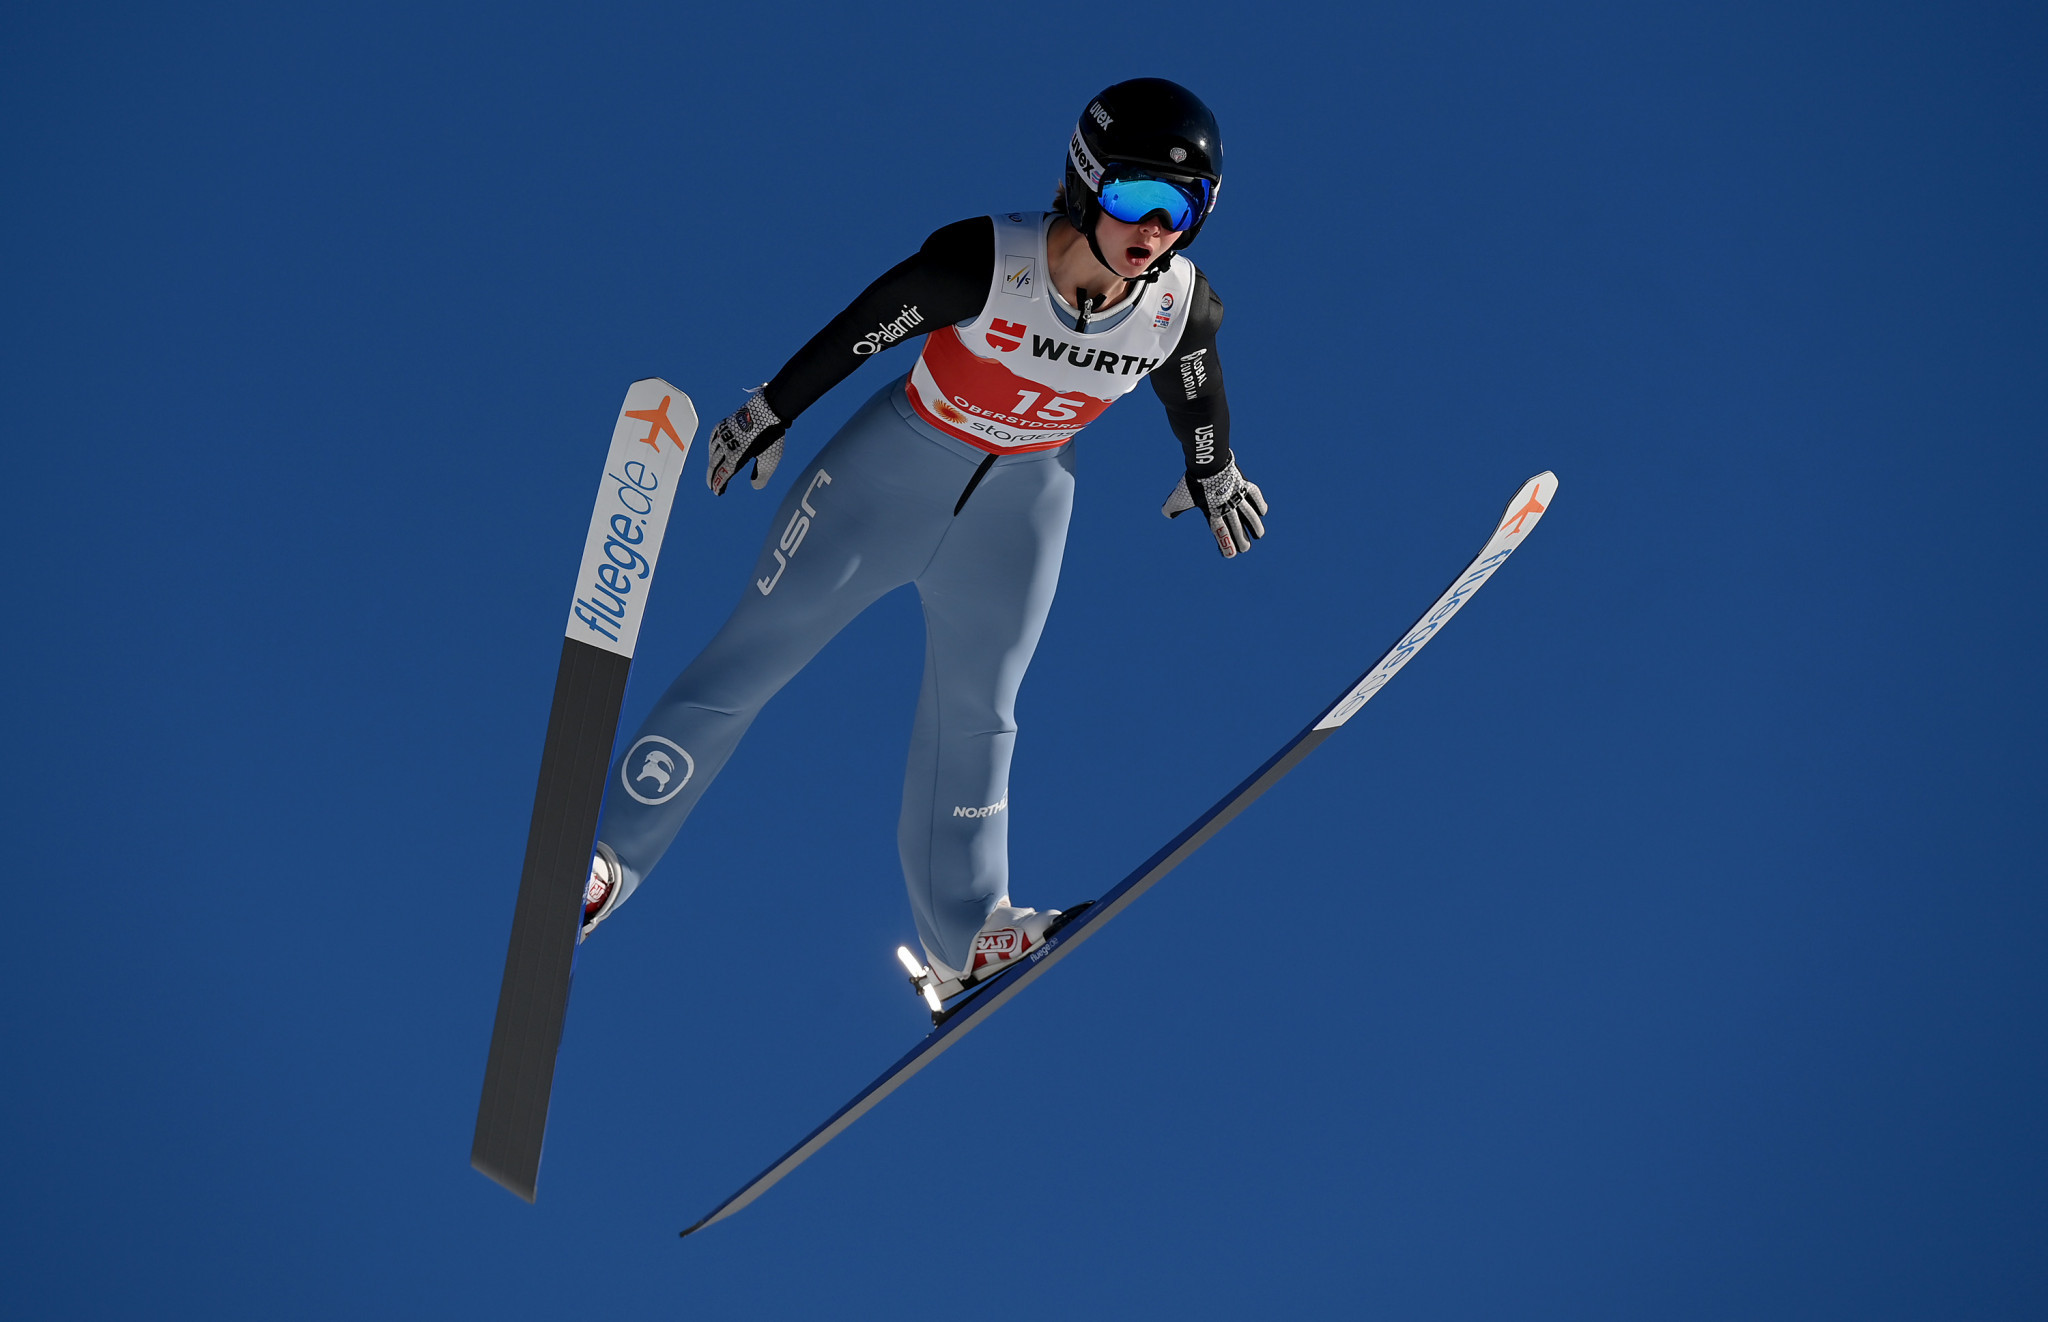 Triple triumph for Belshaw at US Nordic Combined Championships